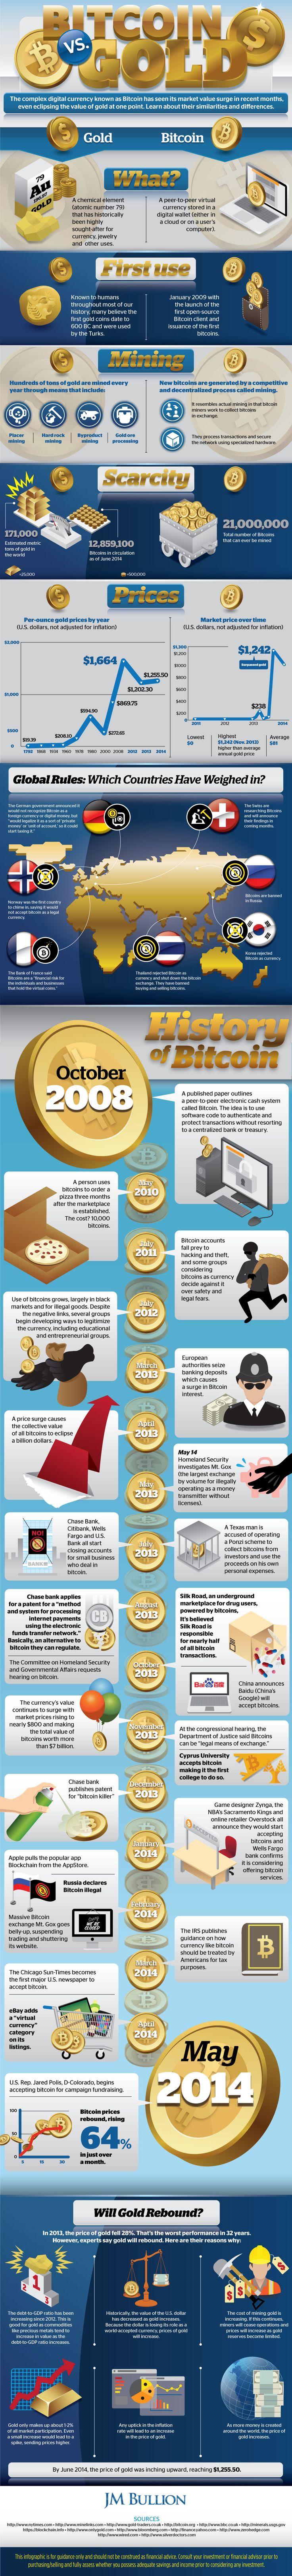 What is Bitcoin?   Daily Infographic | Data Visualization, Information Design and Infographics